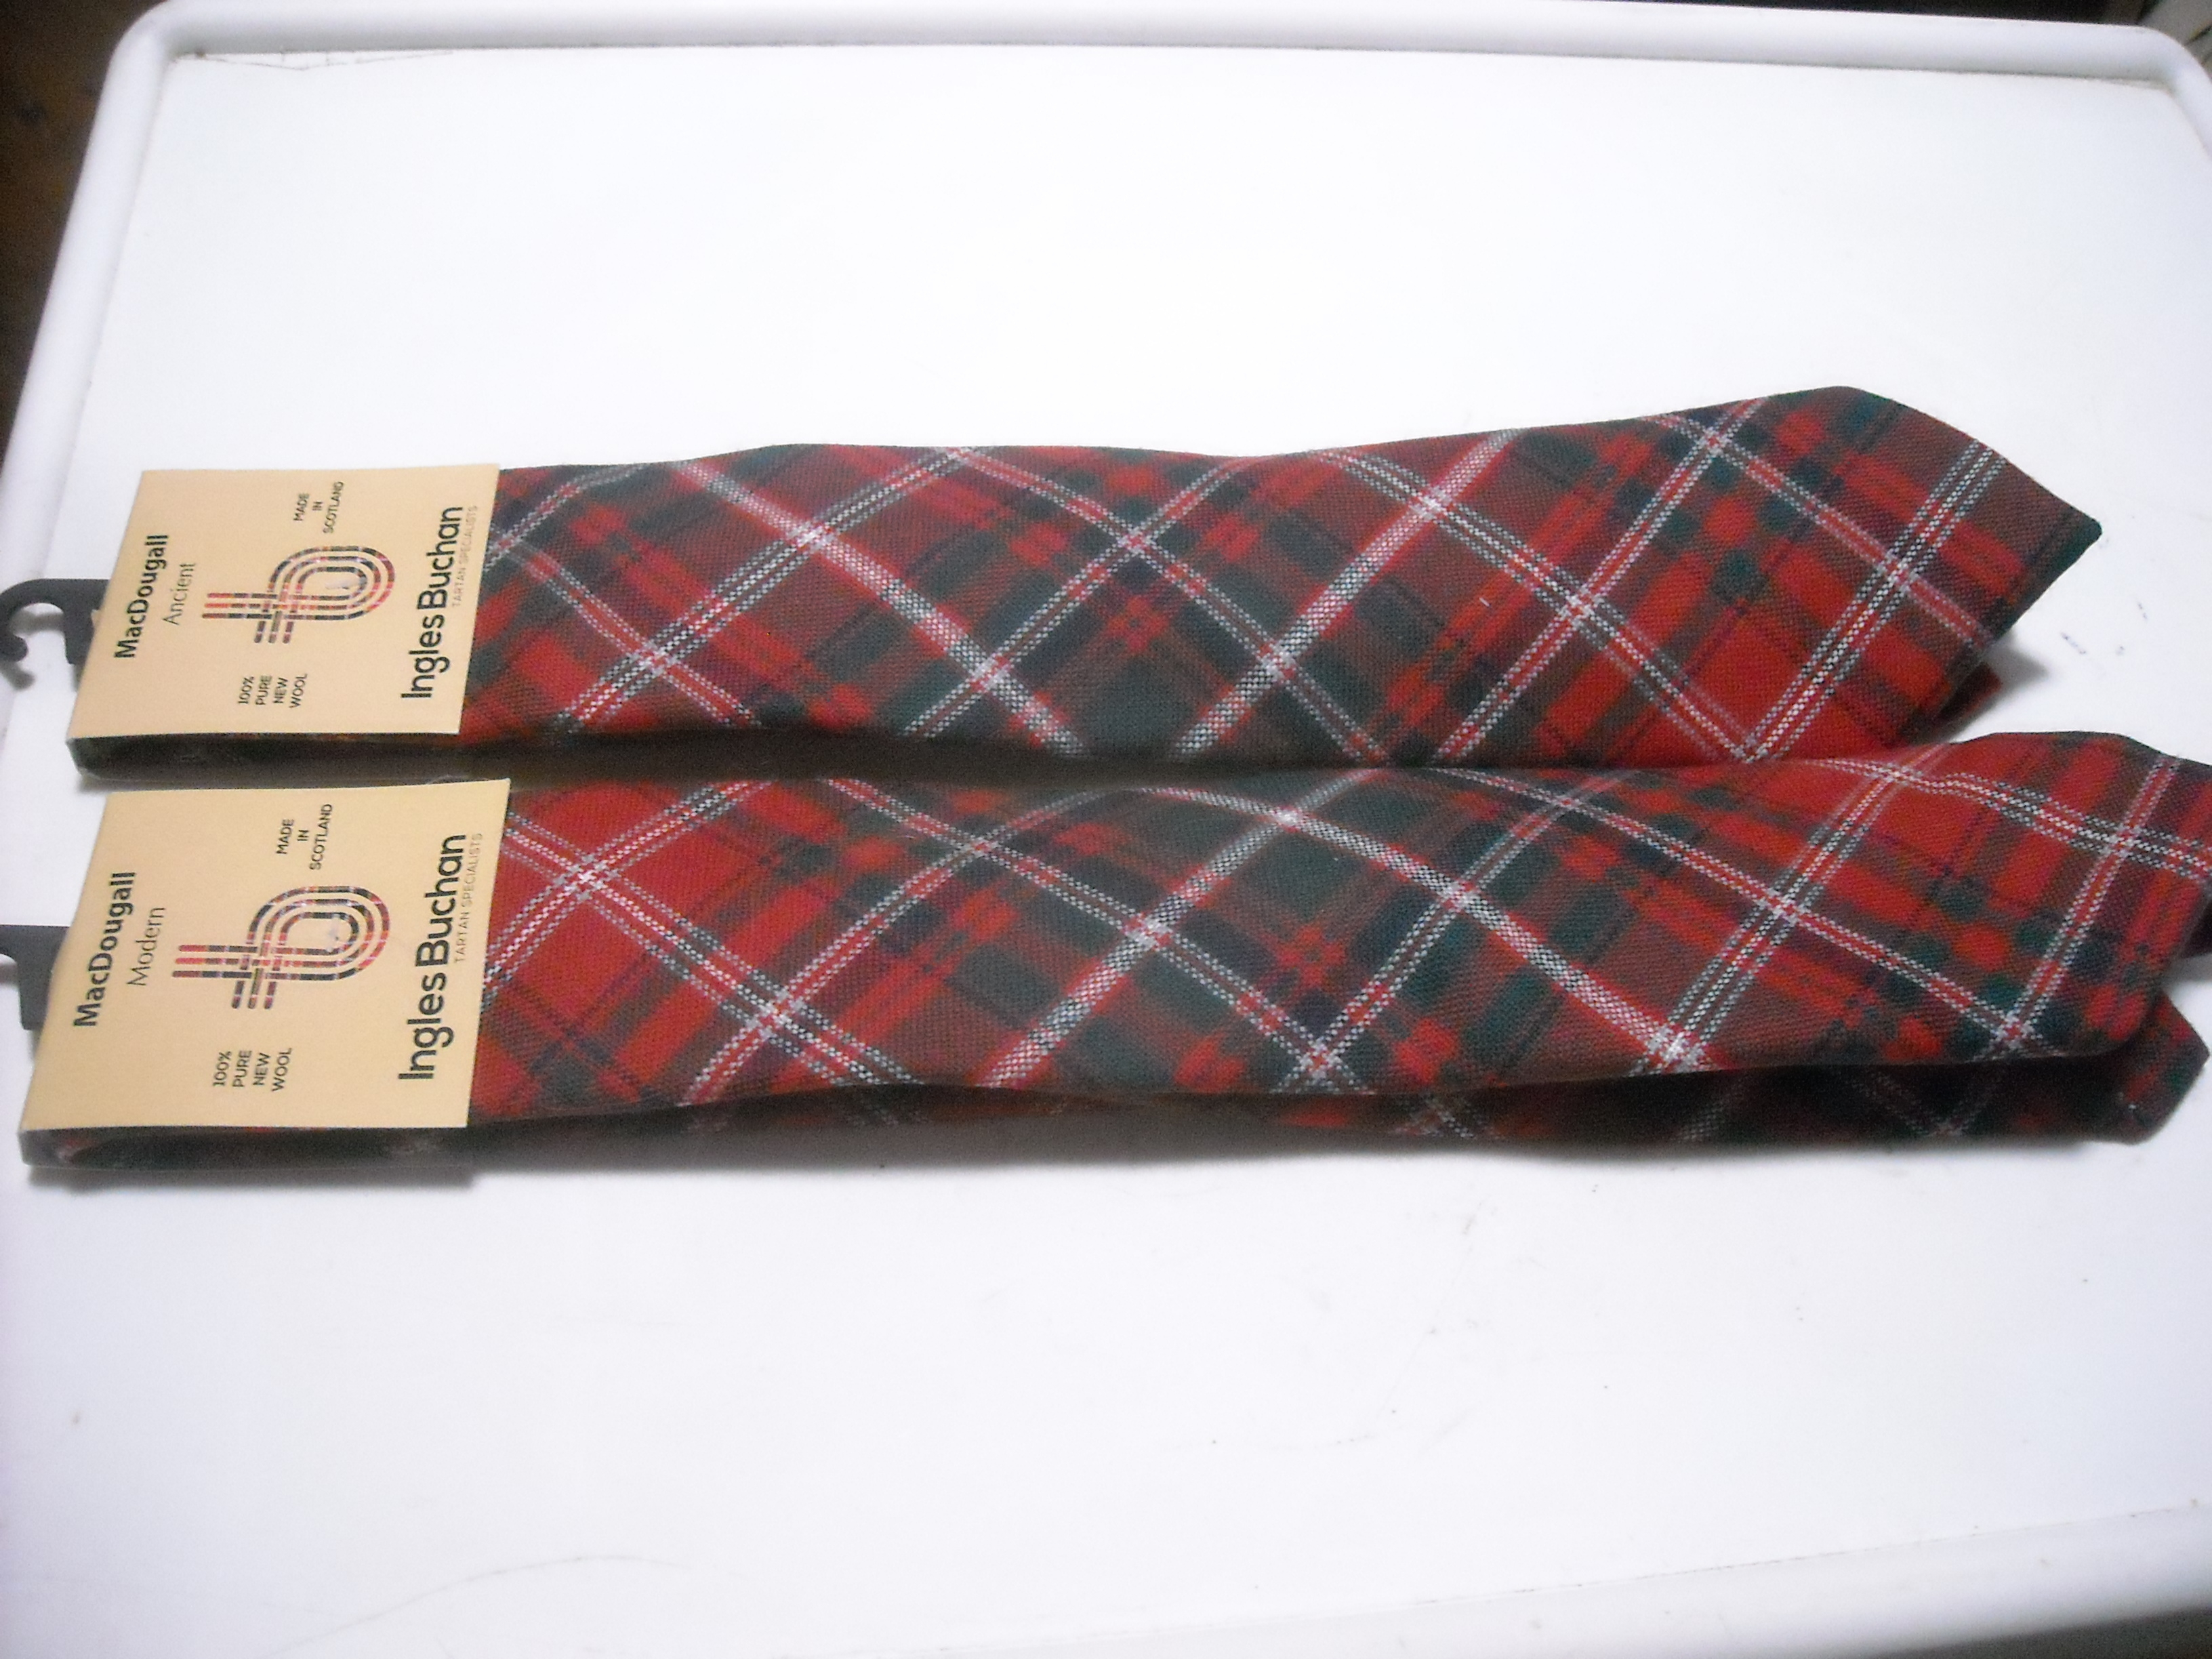 Two MacDougall adult neckties